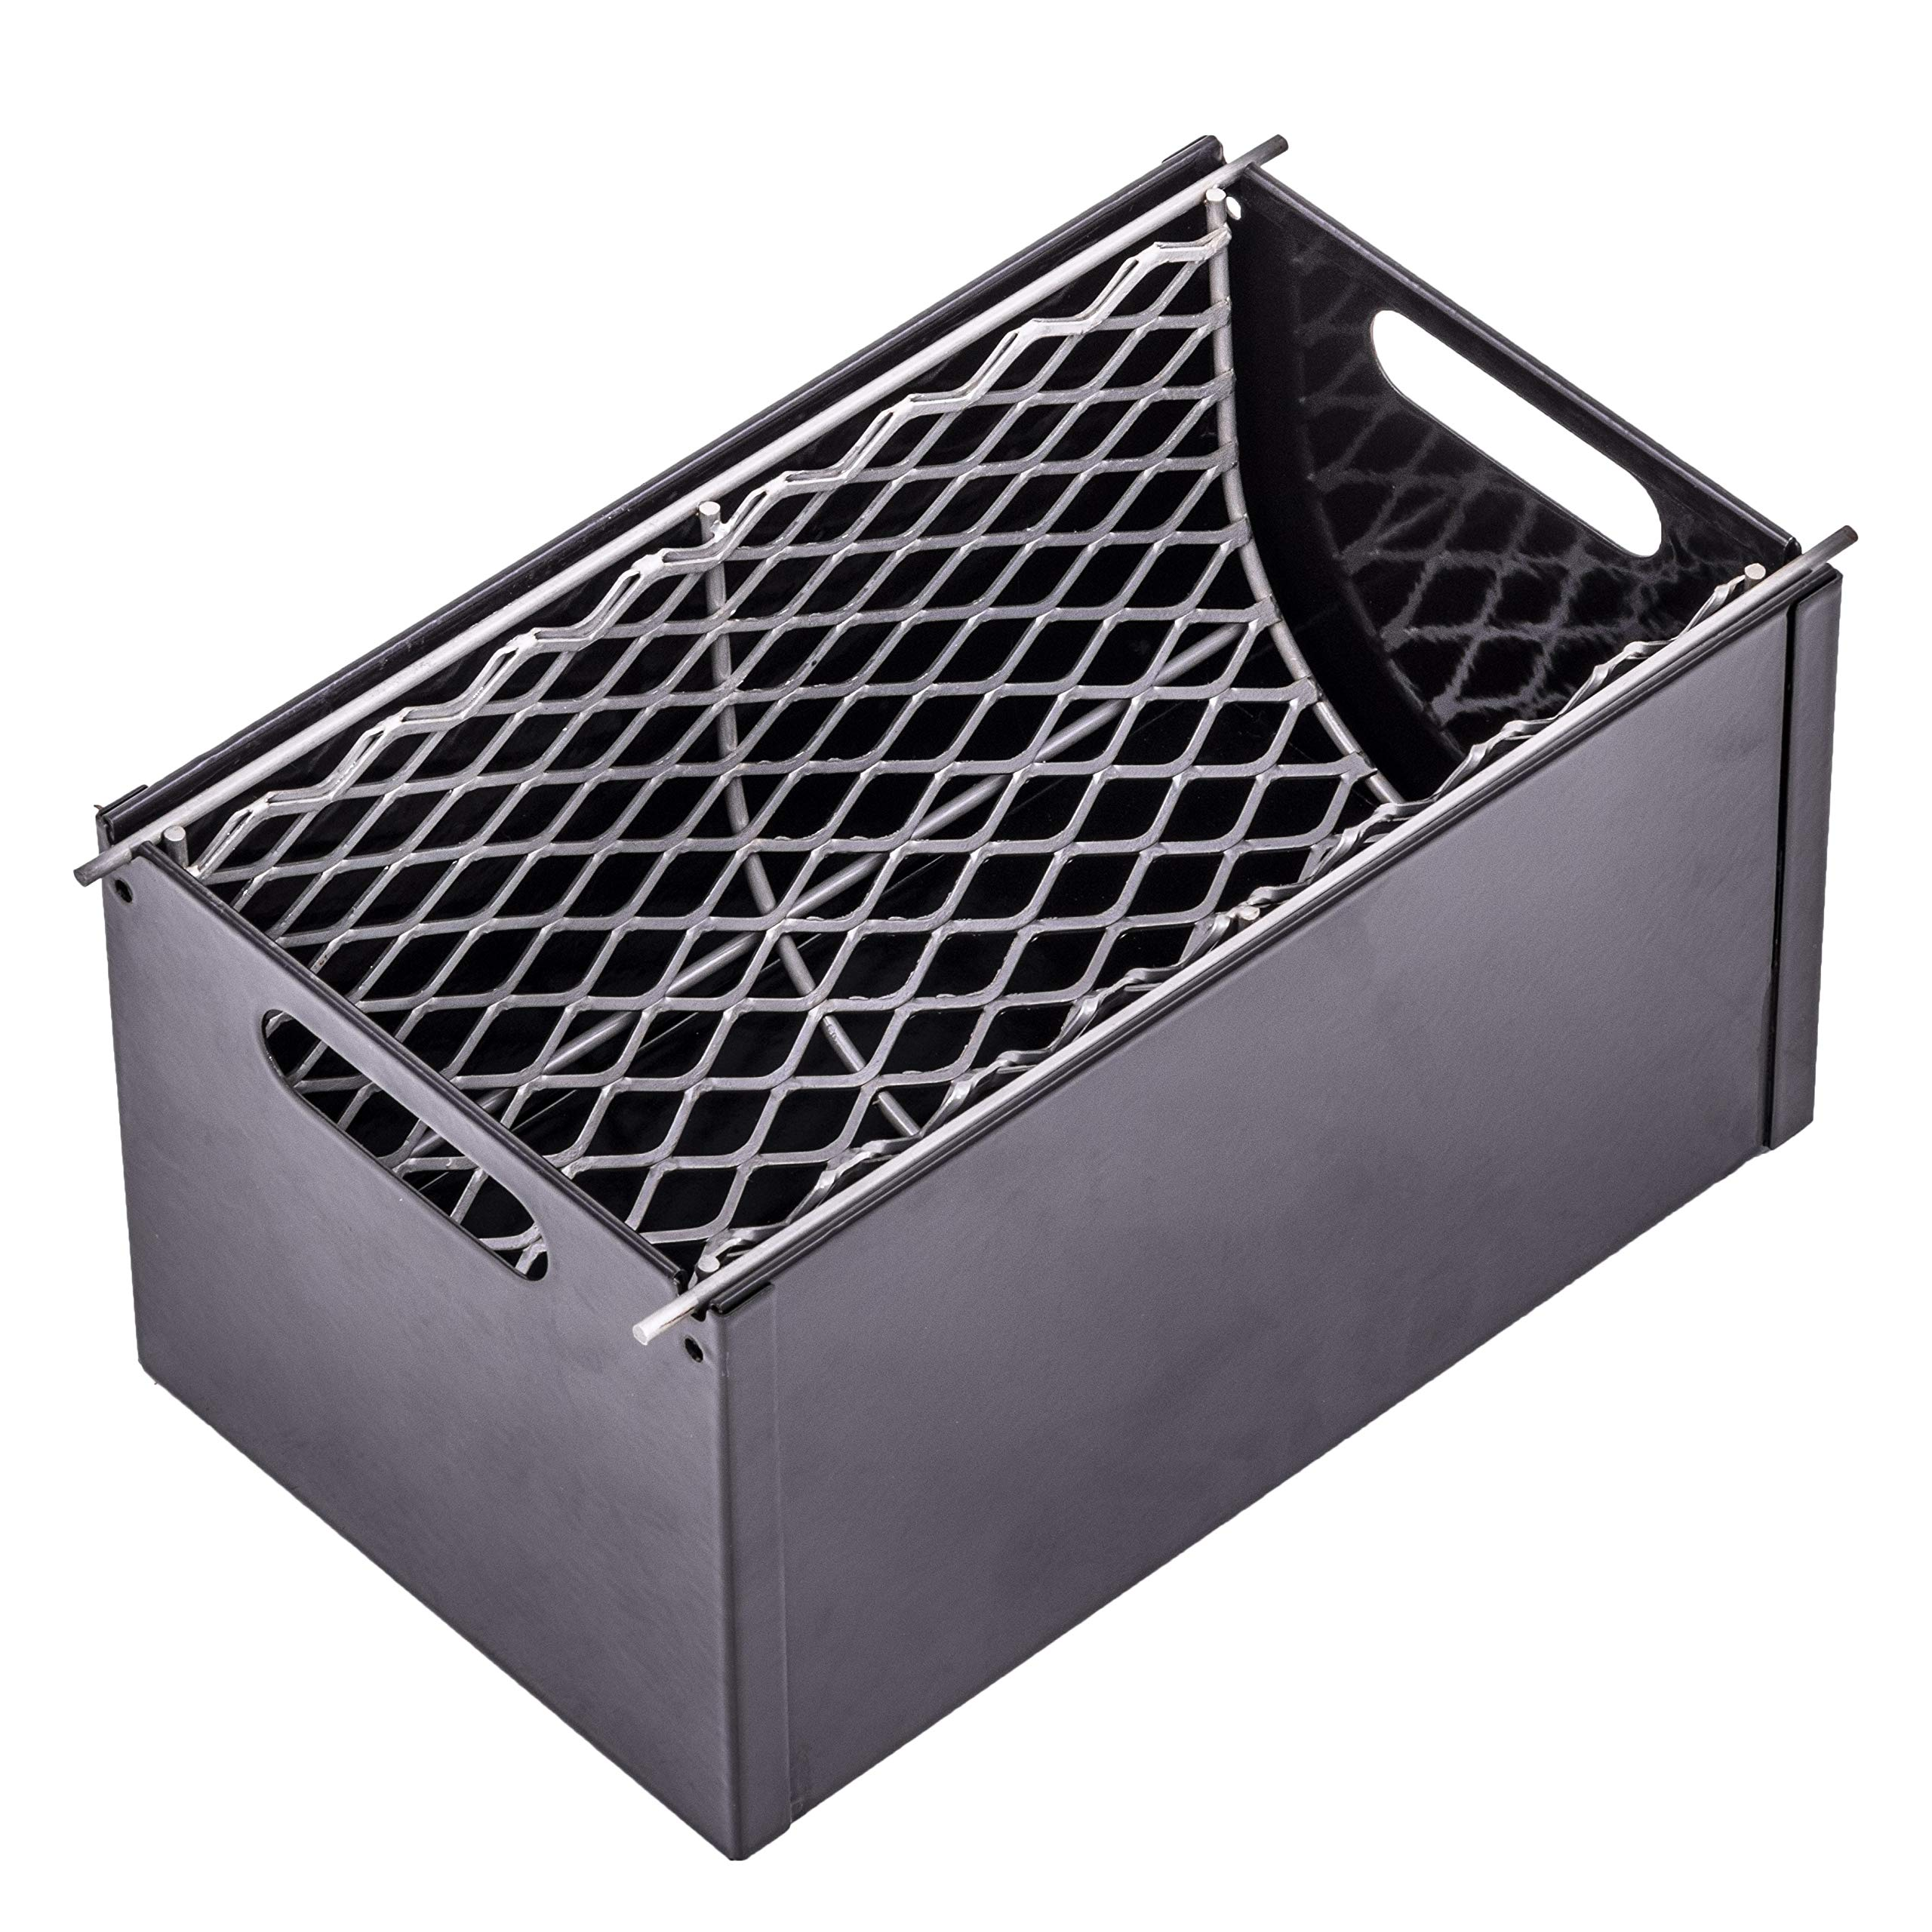 Oklahoma Joe's 3697490W01 Charcoal Grill Smoker Box, Gray by Oklahoma Joe's